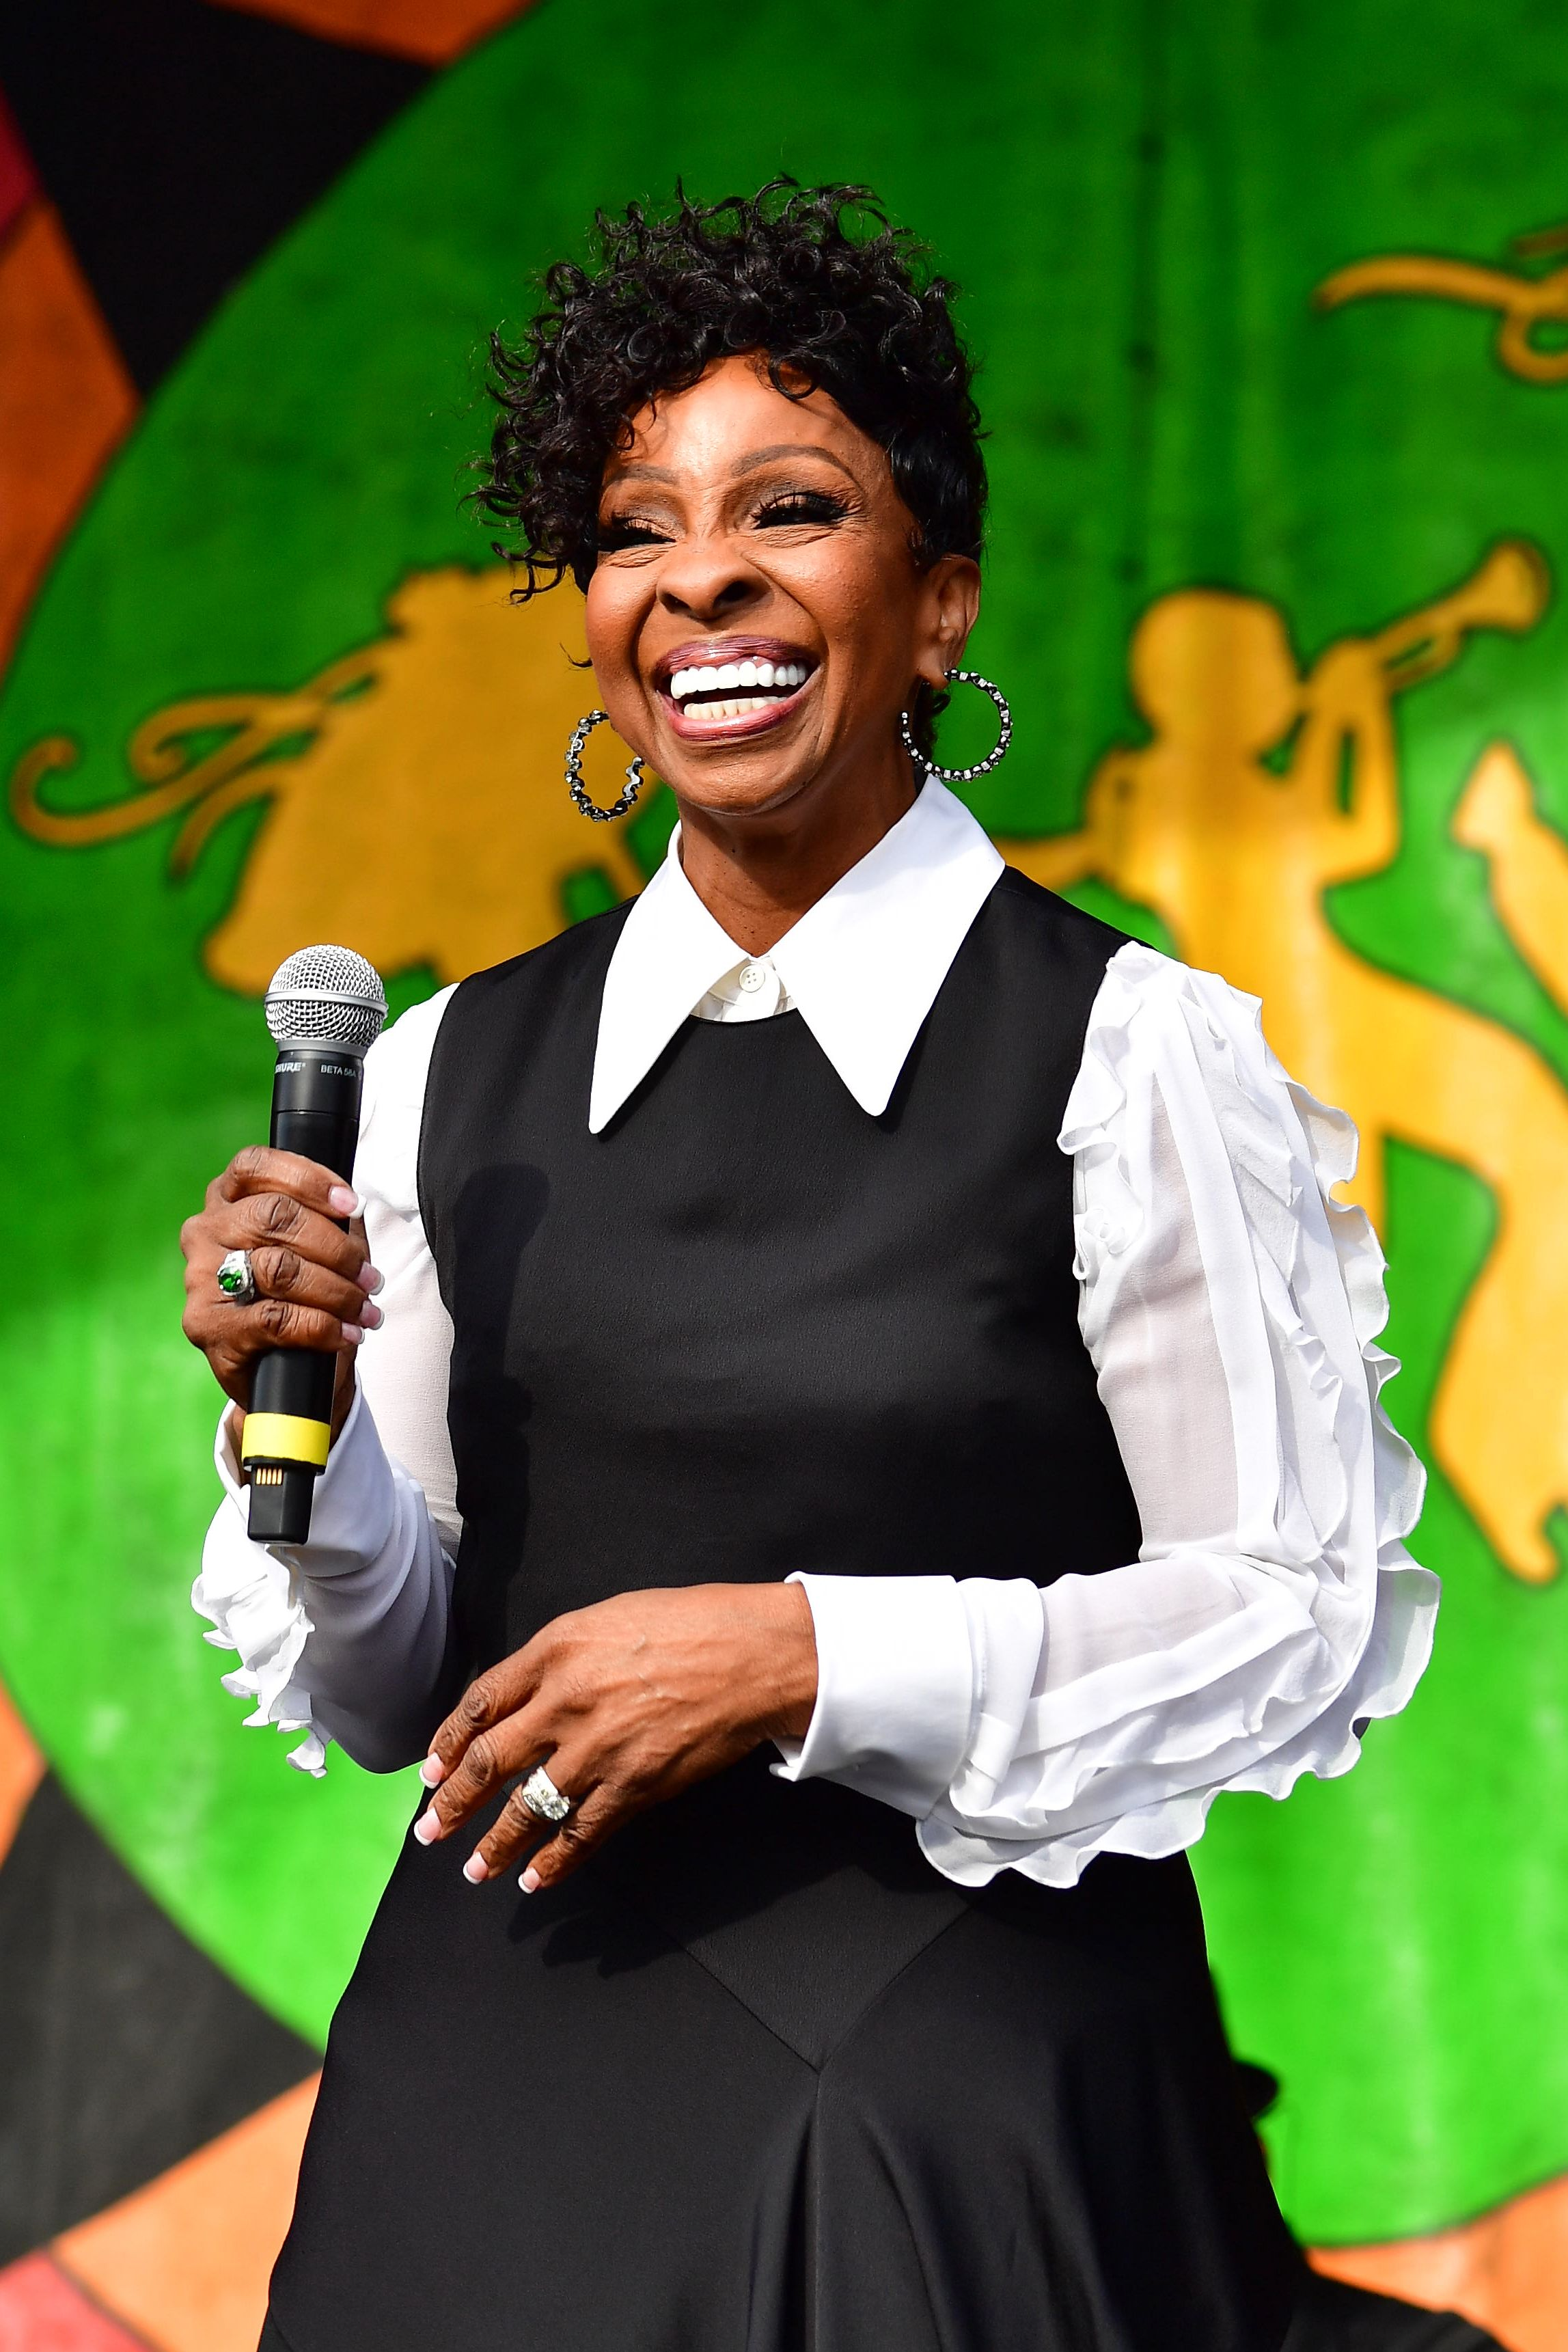 Gladys Knight during the 2019 New Orleans Jazz & Heritage Festival 50th Anniversary at Fair Grounds Race Course on May 03, 2019 in New Orleans, Louisiana. | Source: Getty Images